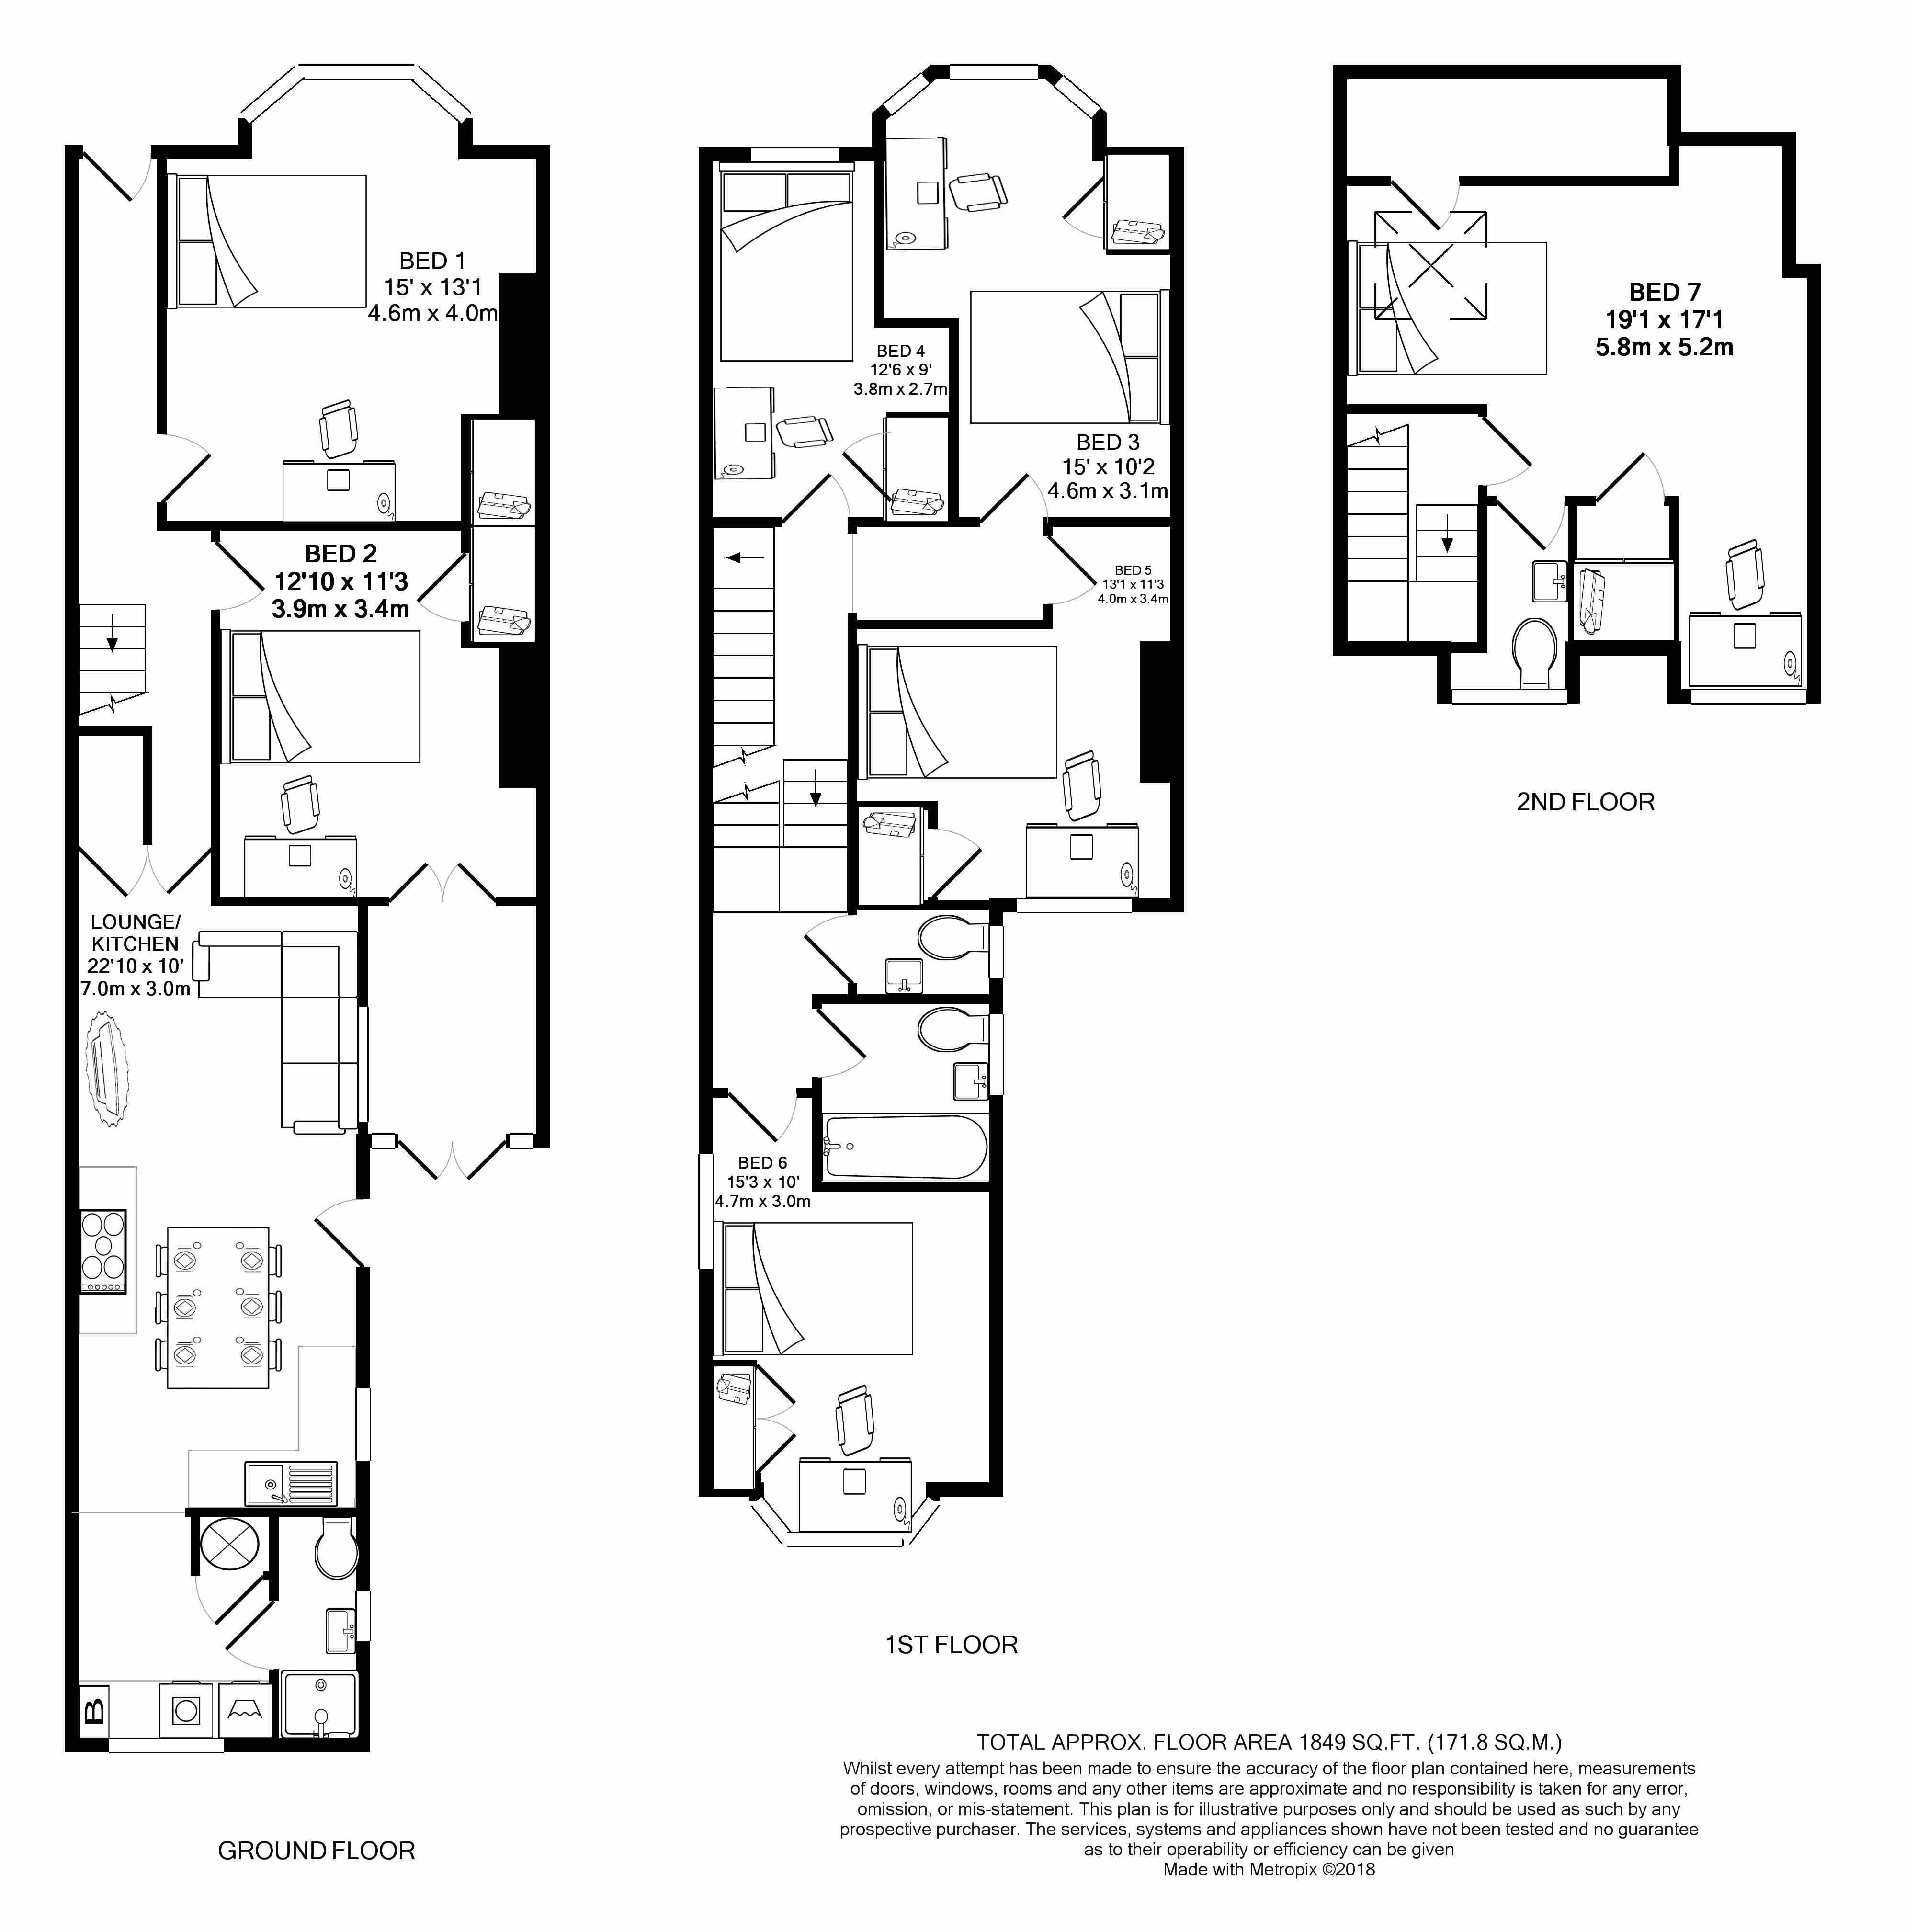 50 Pinhoe Road - floorplans